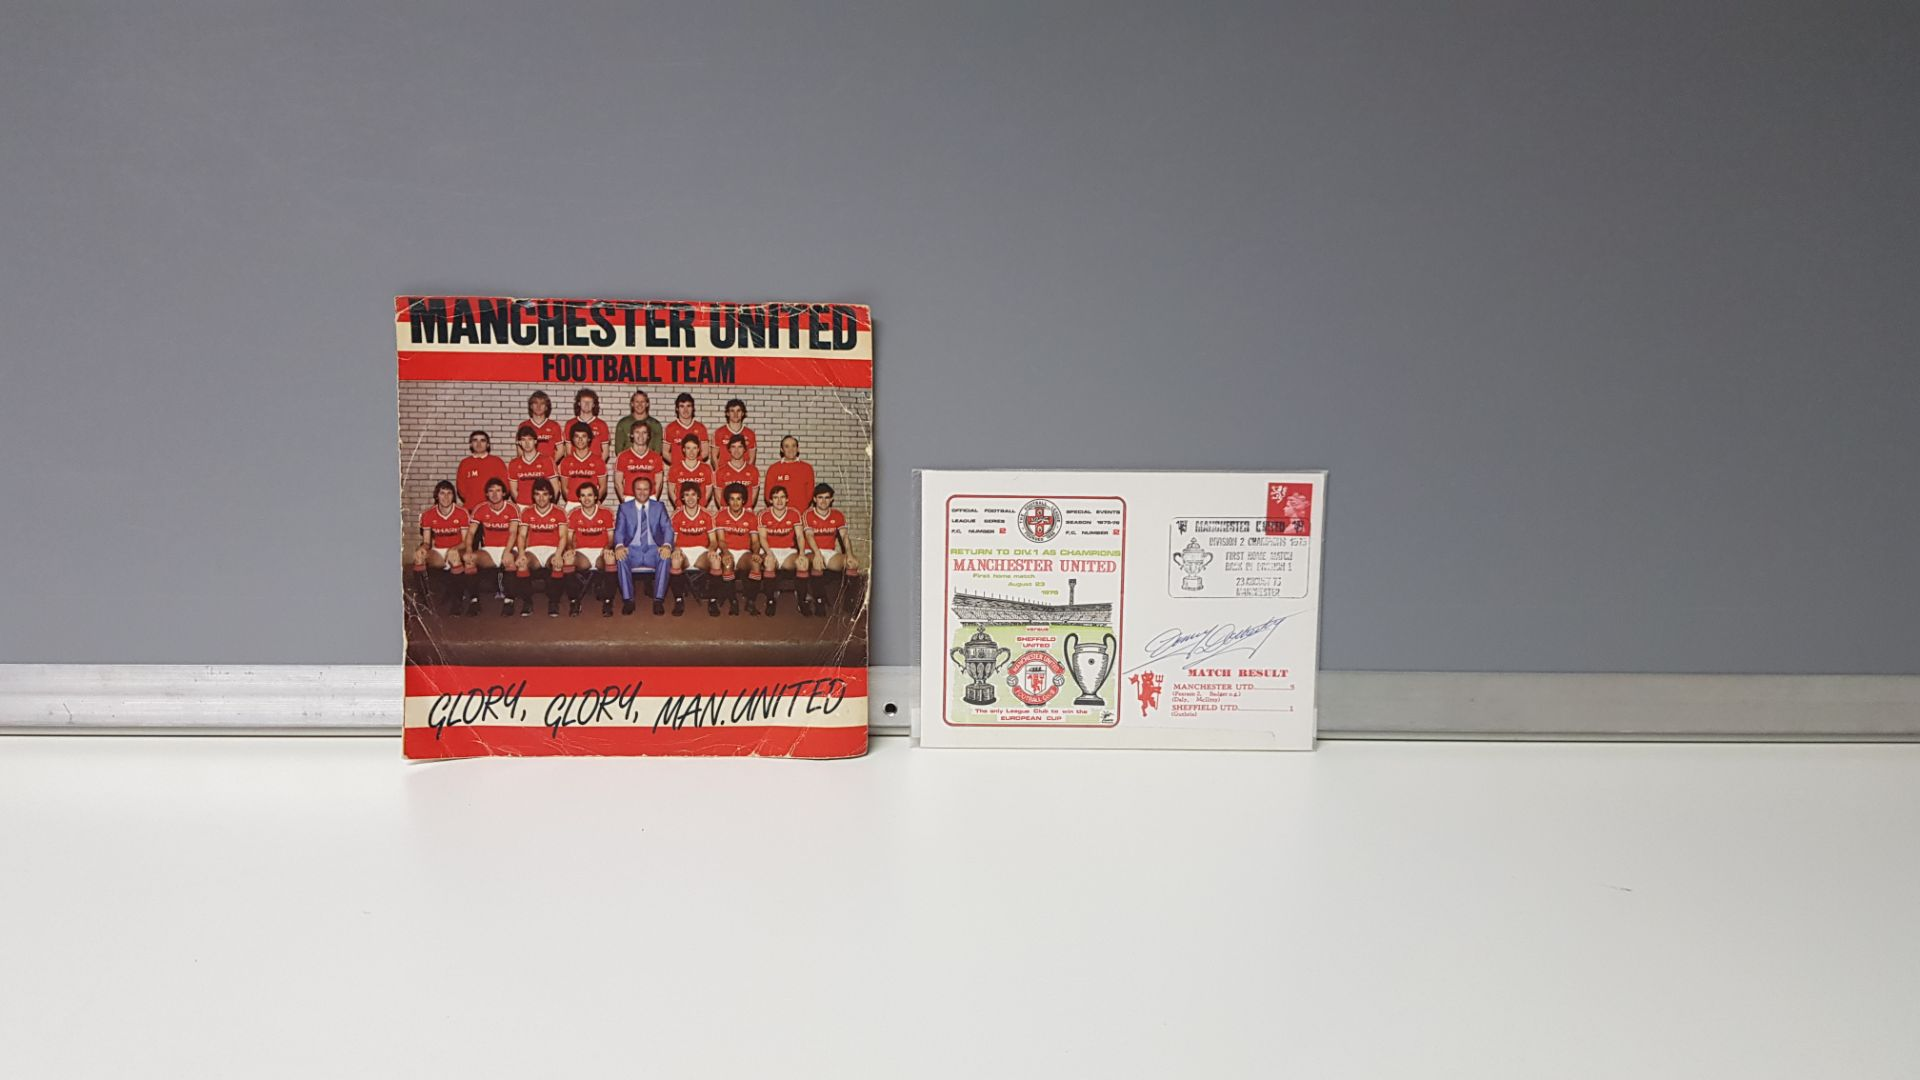 2 X ITEMS OF MANCHESTER UNITED MEMORABILIA TO INCLUDE - A MANCHESTER UNITED DIVISION 2 CHAMPIONS